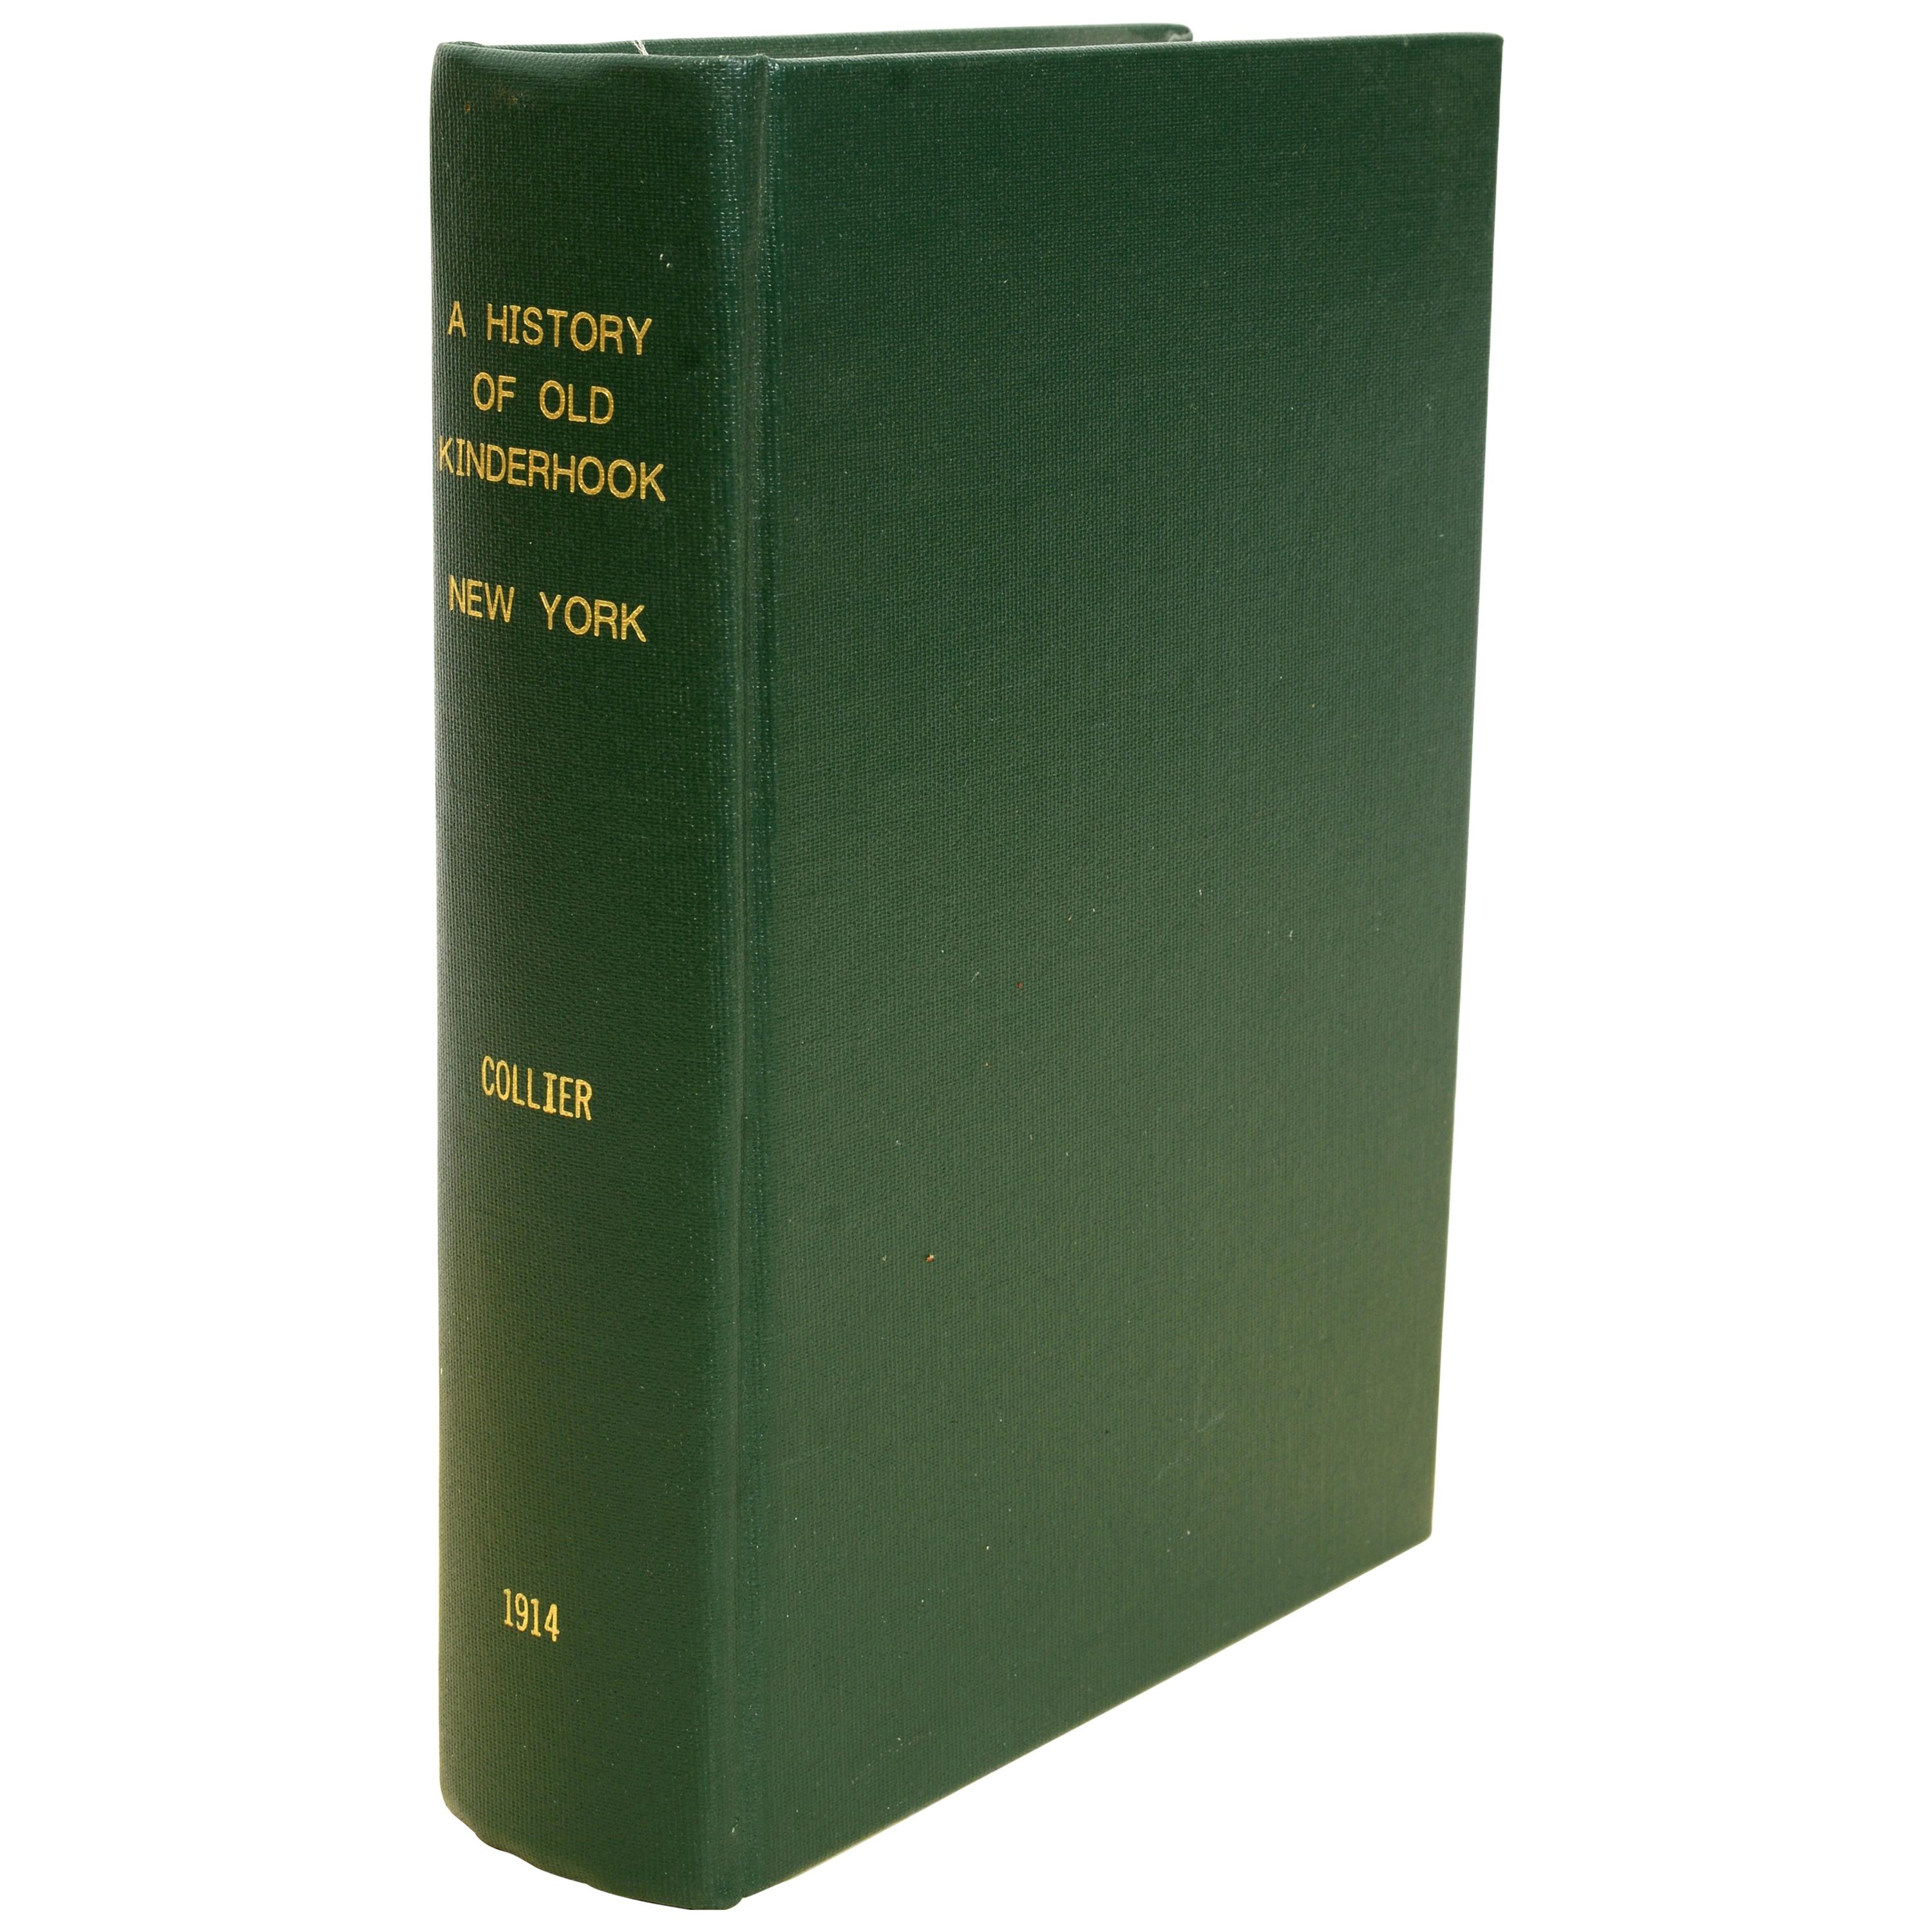 History of Old Kinderhook by Edward Augustus Collier